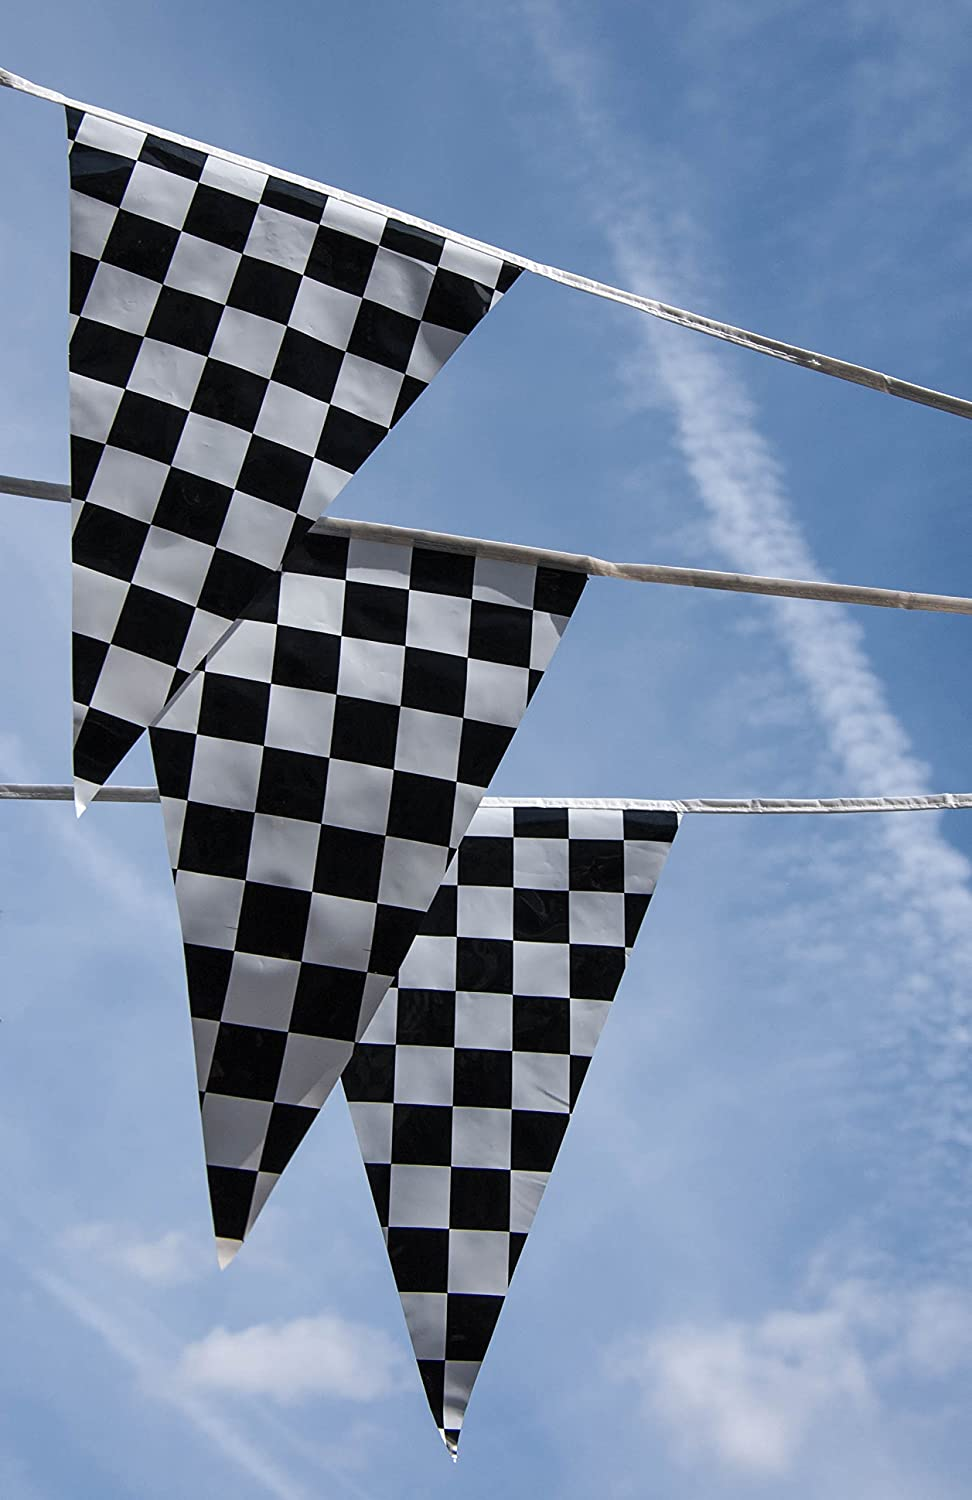 Amazon.com: Black and White Checkered Race Flags Banner by Gabby Fun ...